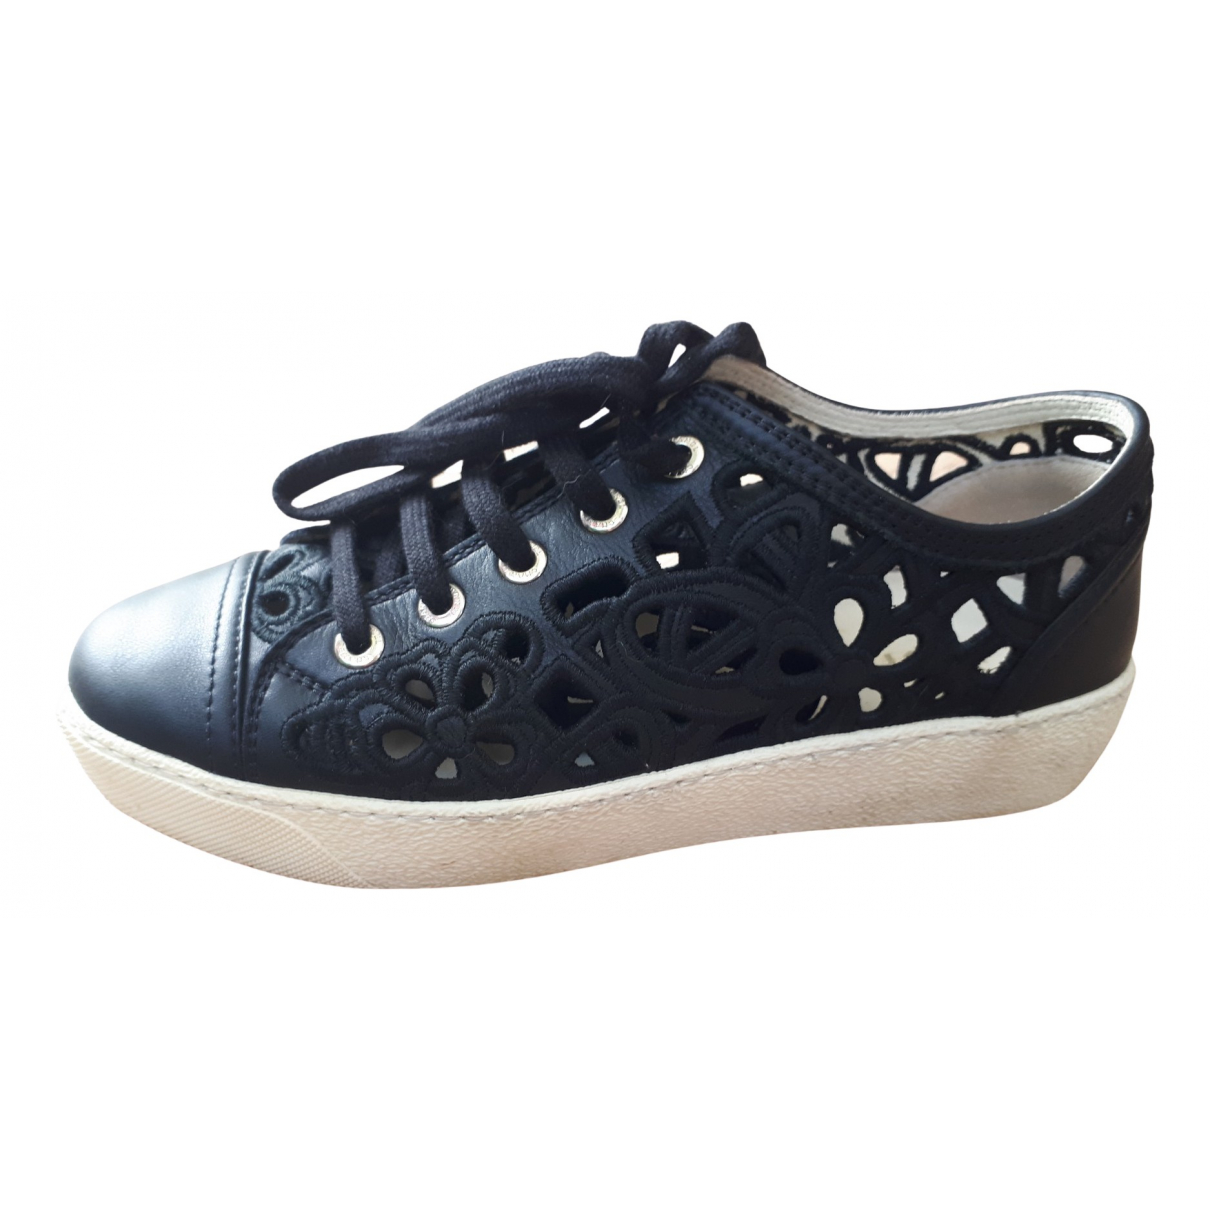 Chanel N Black Leather Trainers for Women 35.5 EU